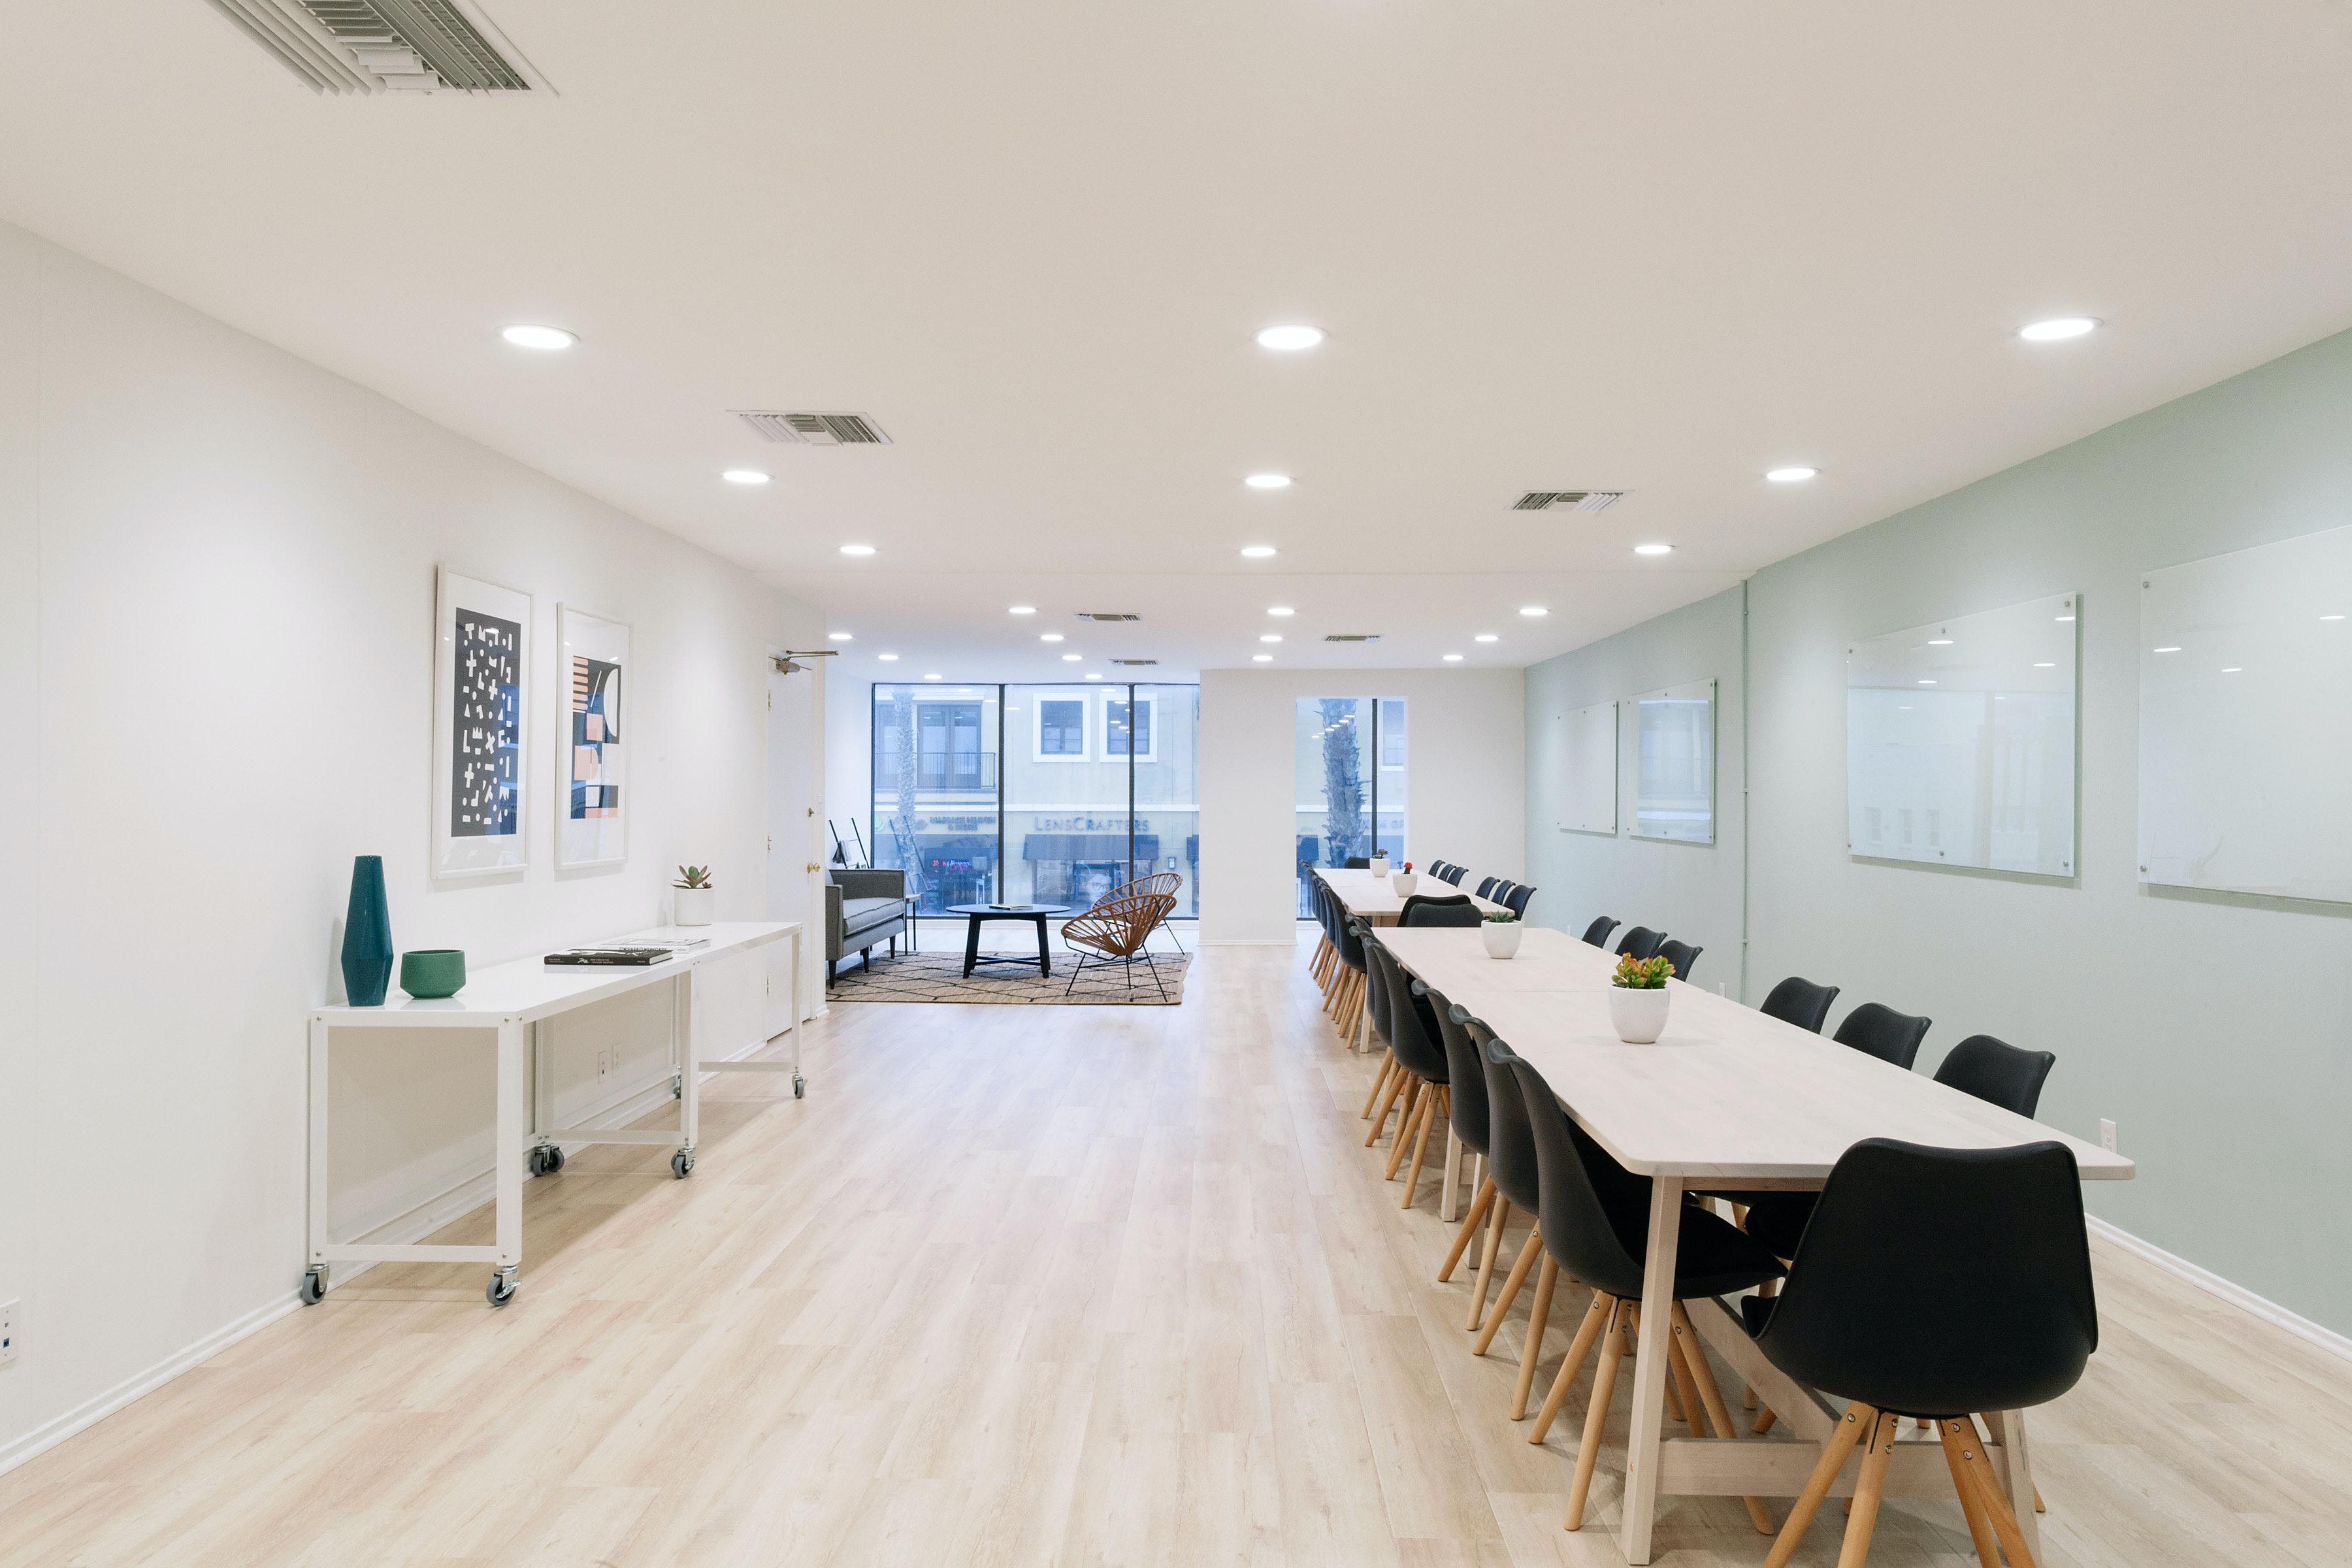 meetup space at 320 Wilshire Blvd ,Los Angeles